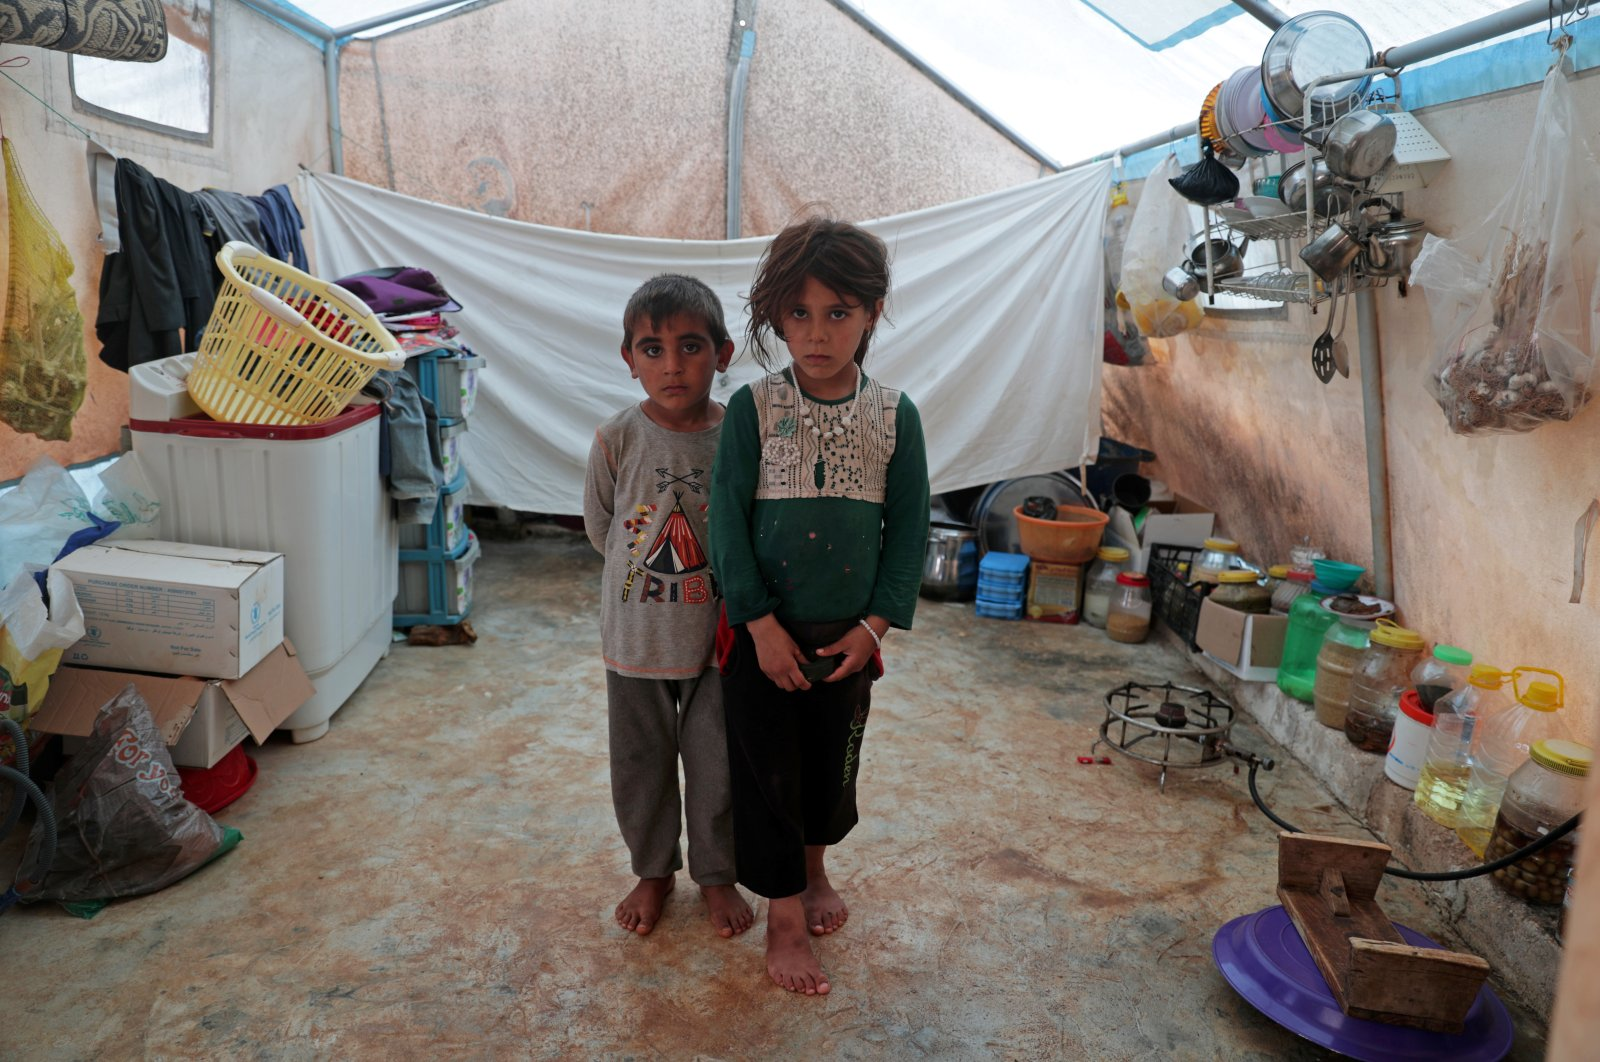 Jumana and Farhan al-Alyawi, displaced Syrian twins from east Idlib, pose for a picture in a tent at Atmeh camp, near the Turkish border, June 19, 2020. (REUTERS Photo)